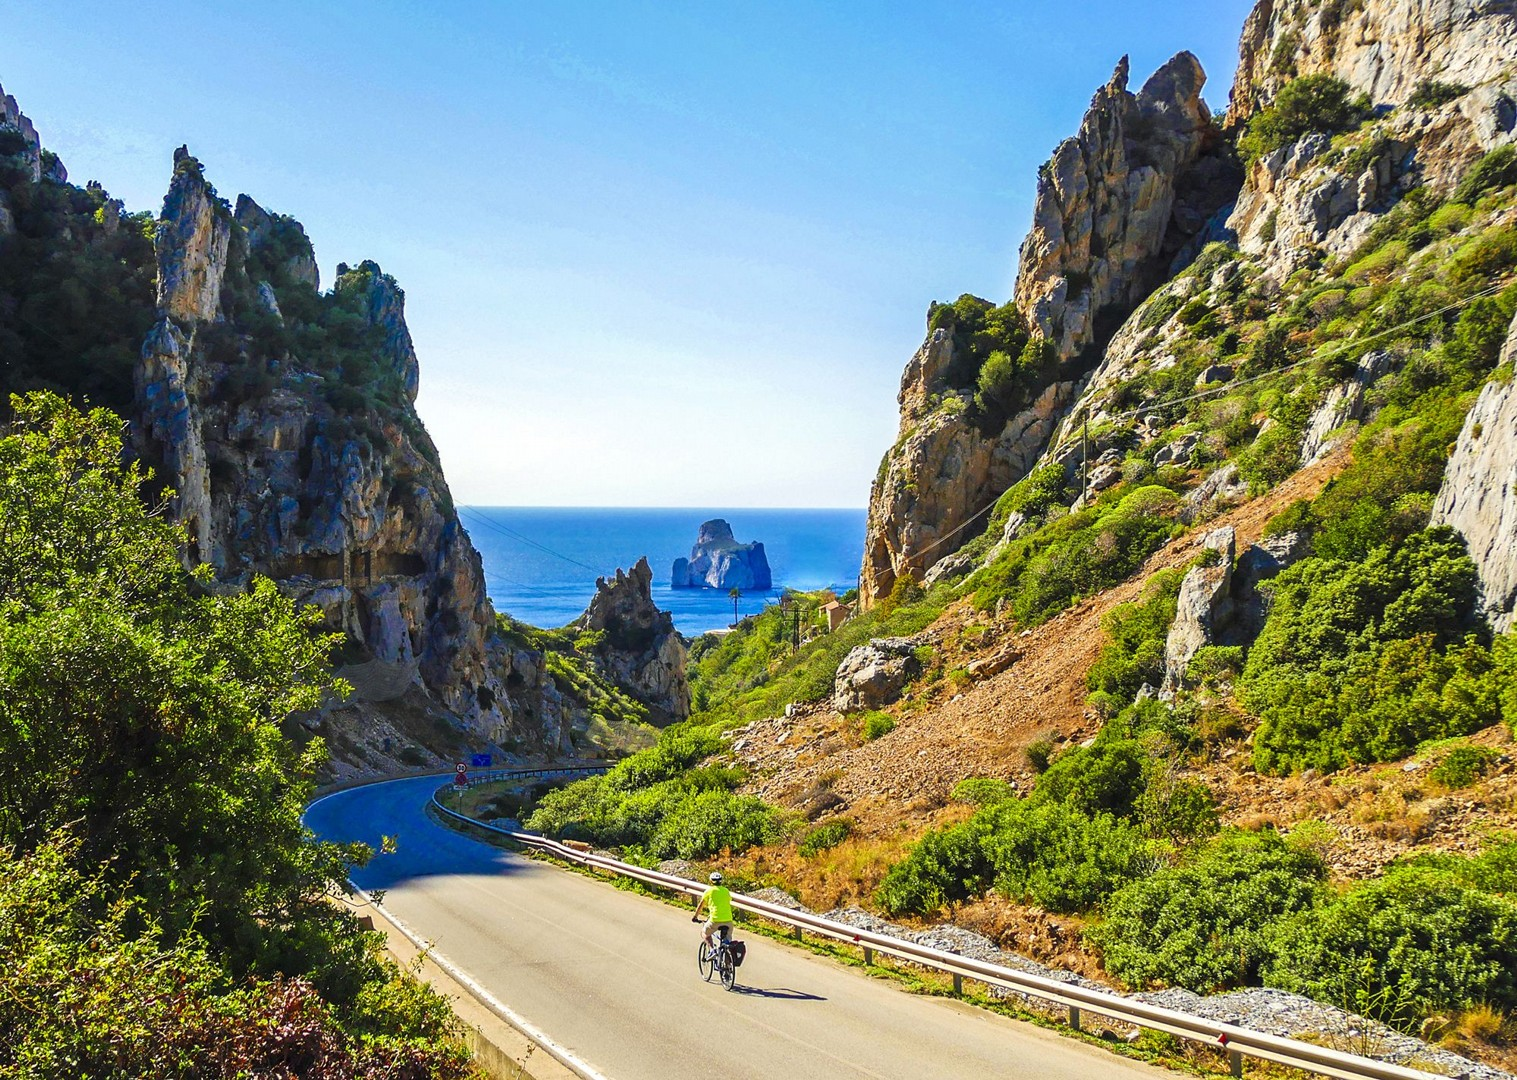 descending-towards-the-pan-di-zucchero-sardinia-cycling-holidays.jpg - Italy - Sardinia - Island Flavours - Self-Guided Leisure Cycling Holiday - Leisure Cycling